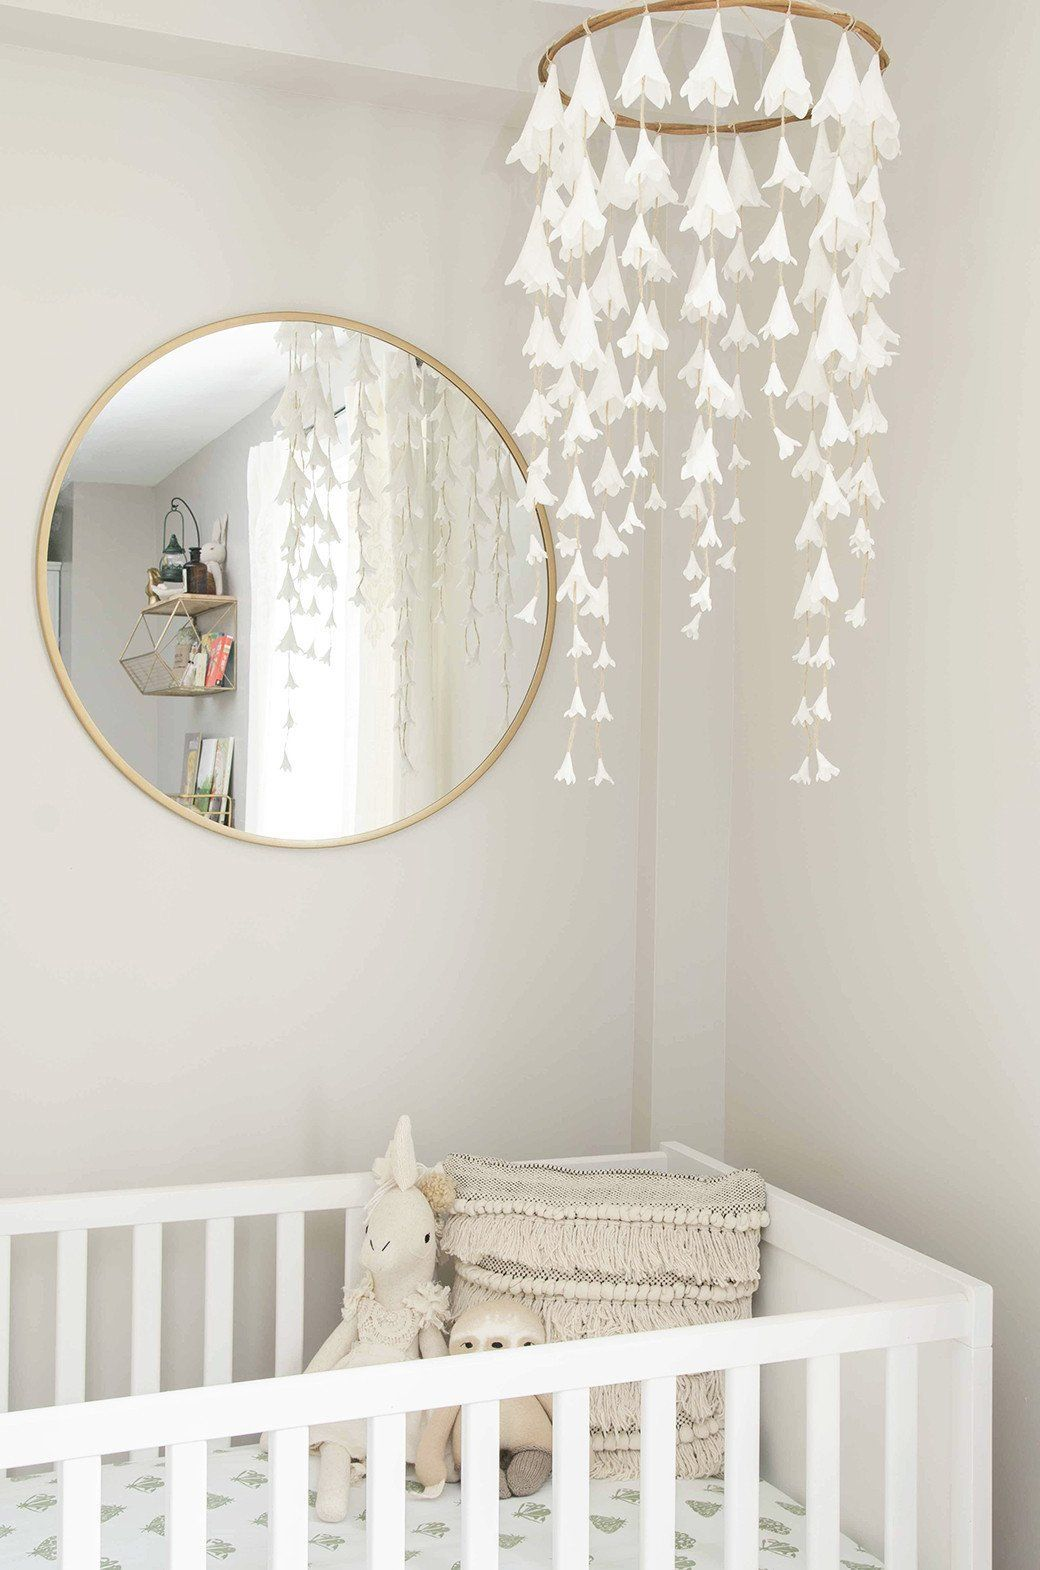 about home sweet home baby nursery decor baby room decor baby rh pinterest com